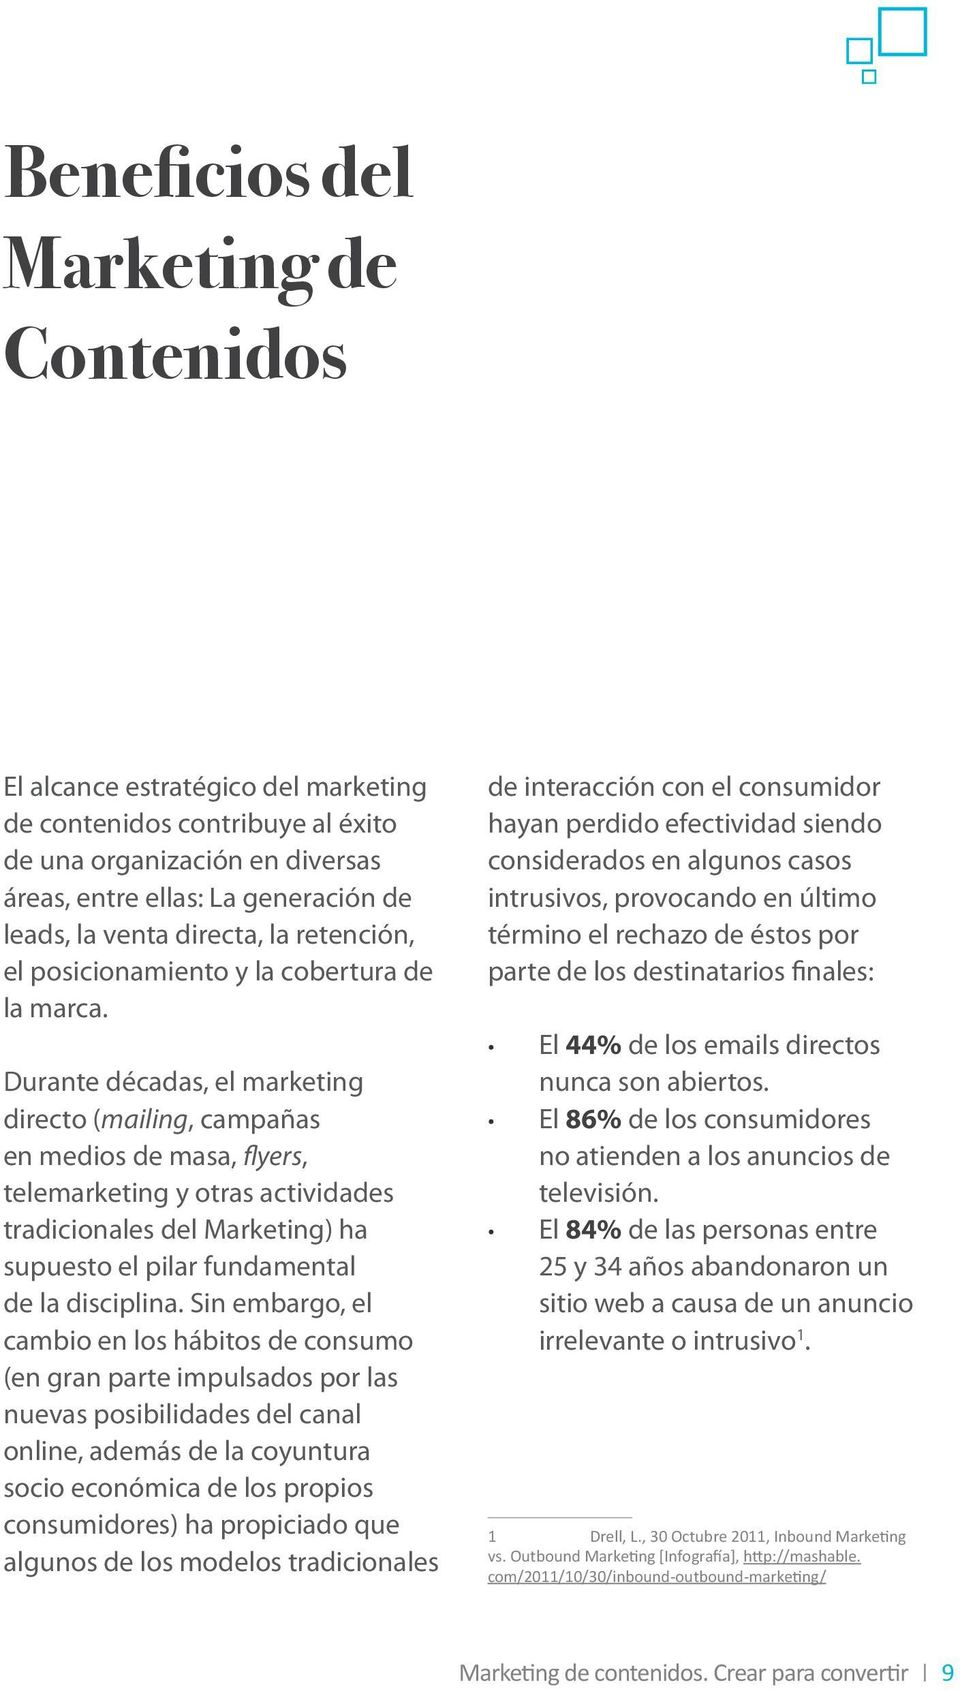 Durante décadas, el marketing directo (mailing, campañas en medios de masa, flyers, telemarketing y otras actividades tradicionales del Marketing) ha supuesto el pilar fundamental de la disciplina.